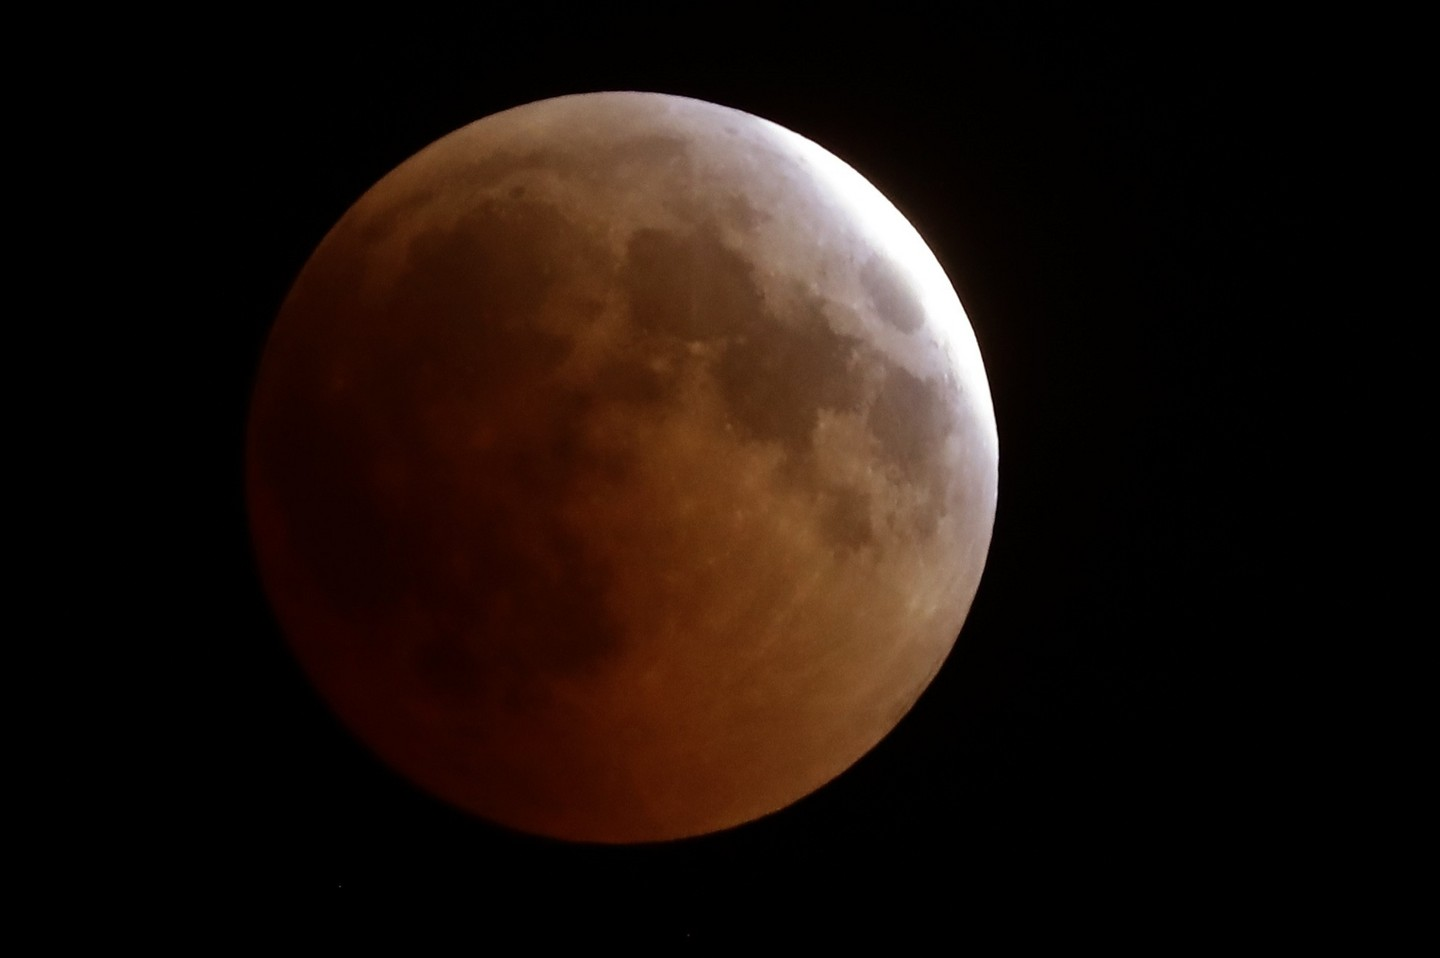 blood moon eclipse ireland - photo #3